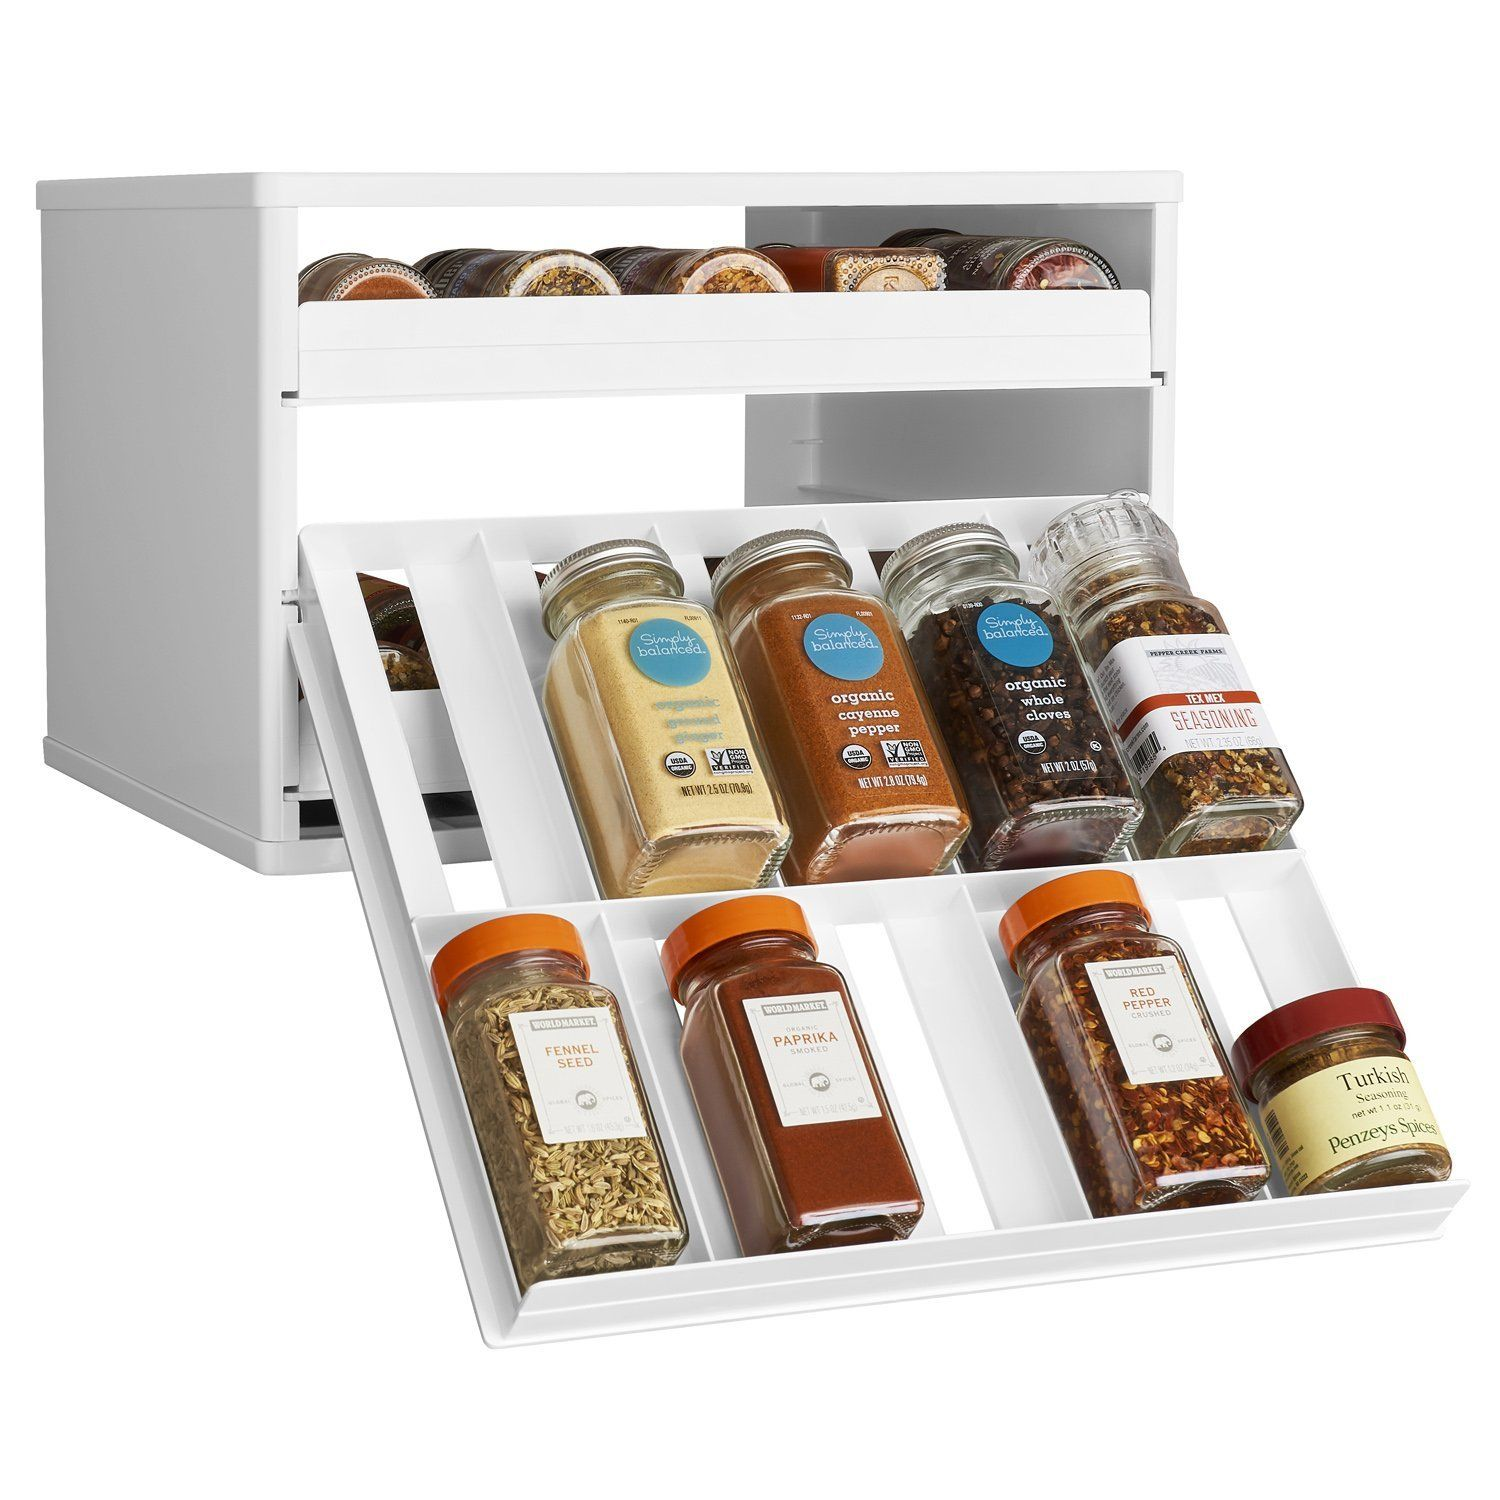 Amazon.com: YouCopia MiniStack 12-Bottle Spice And Vitamin